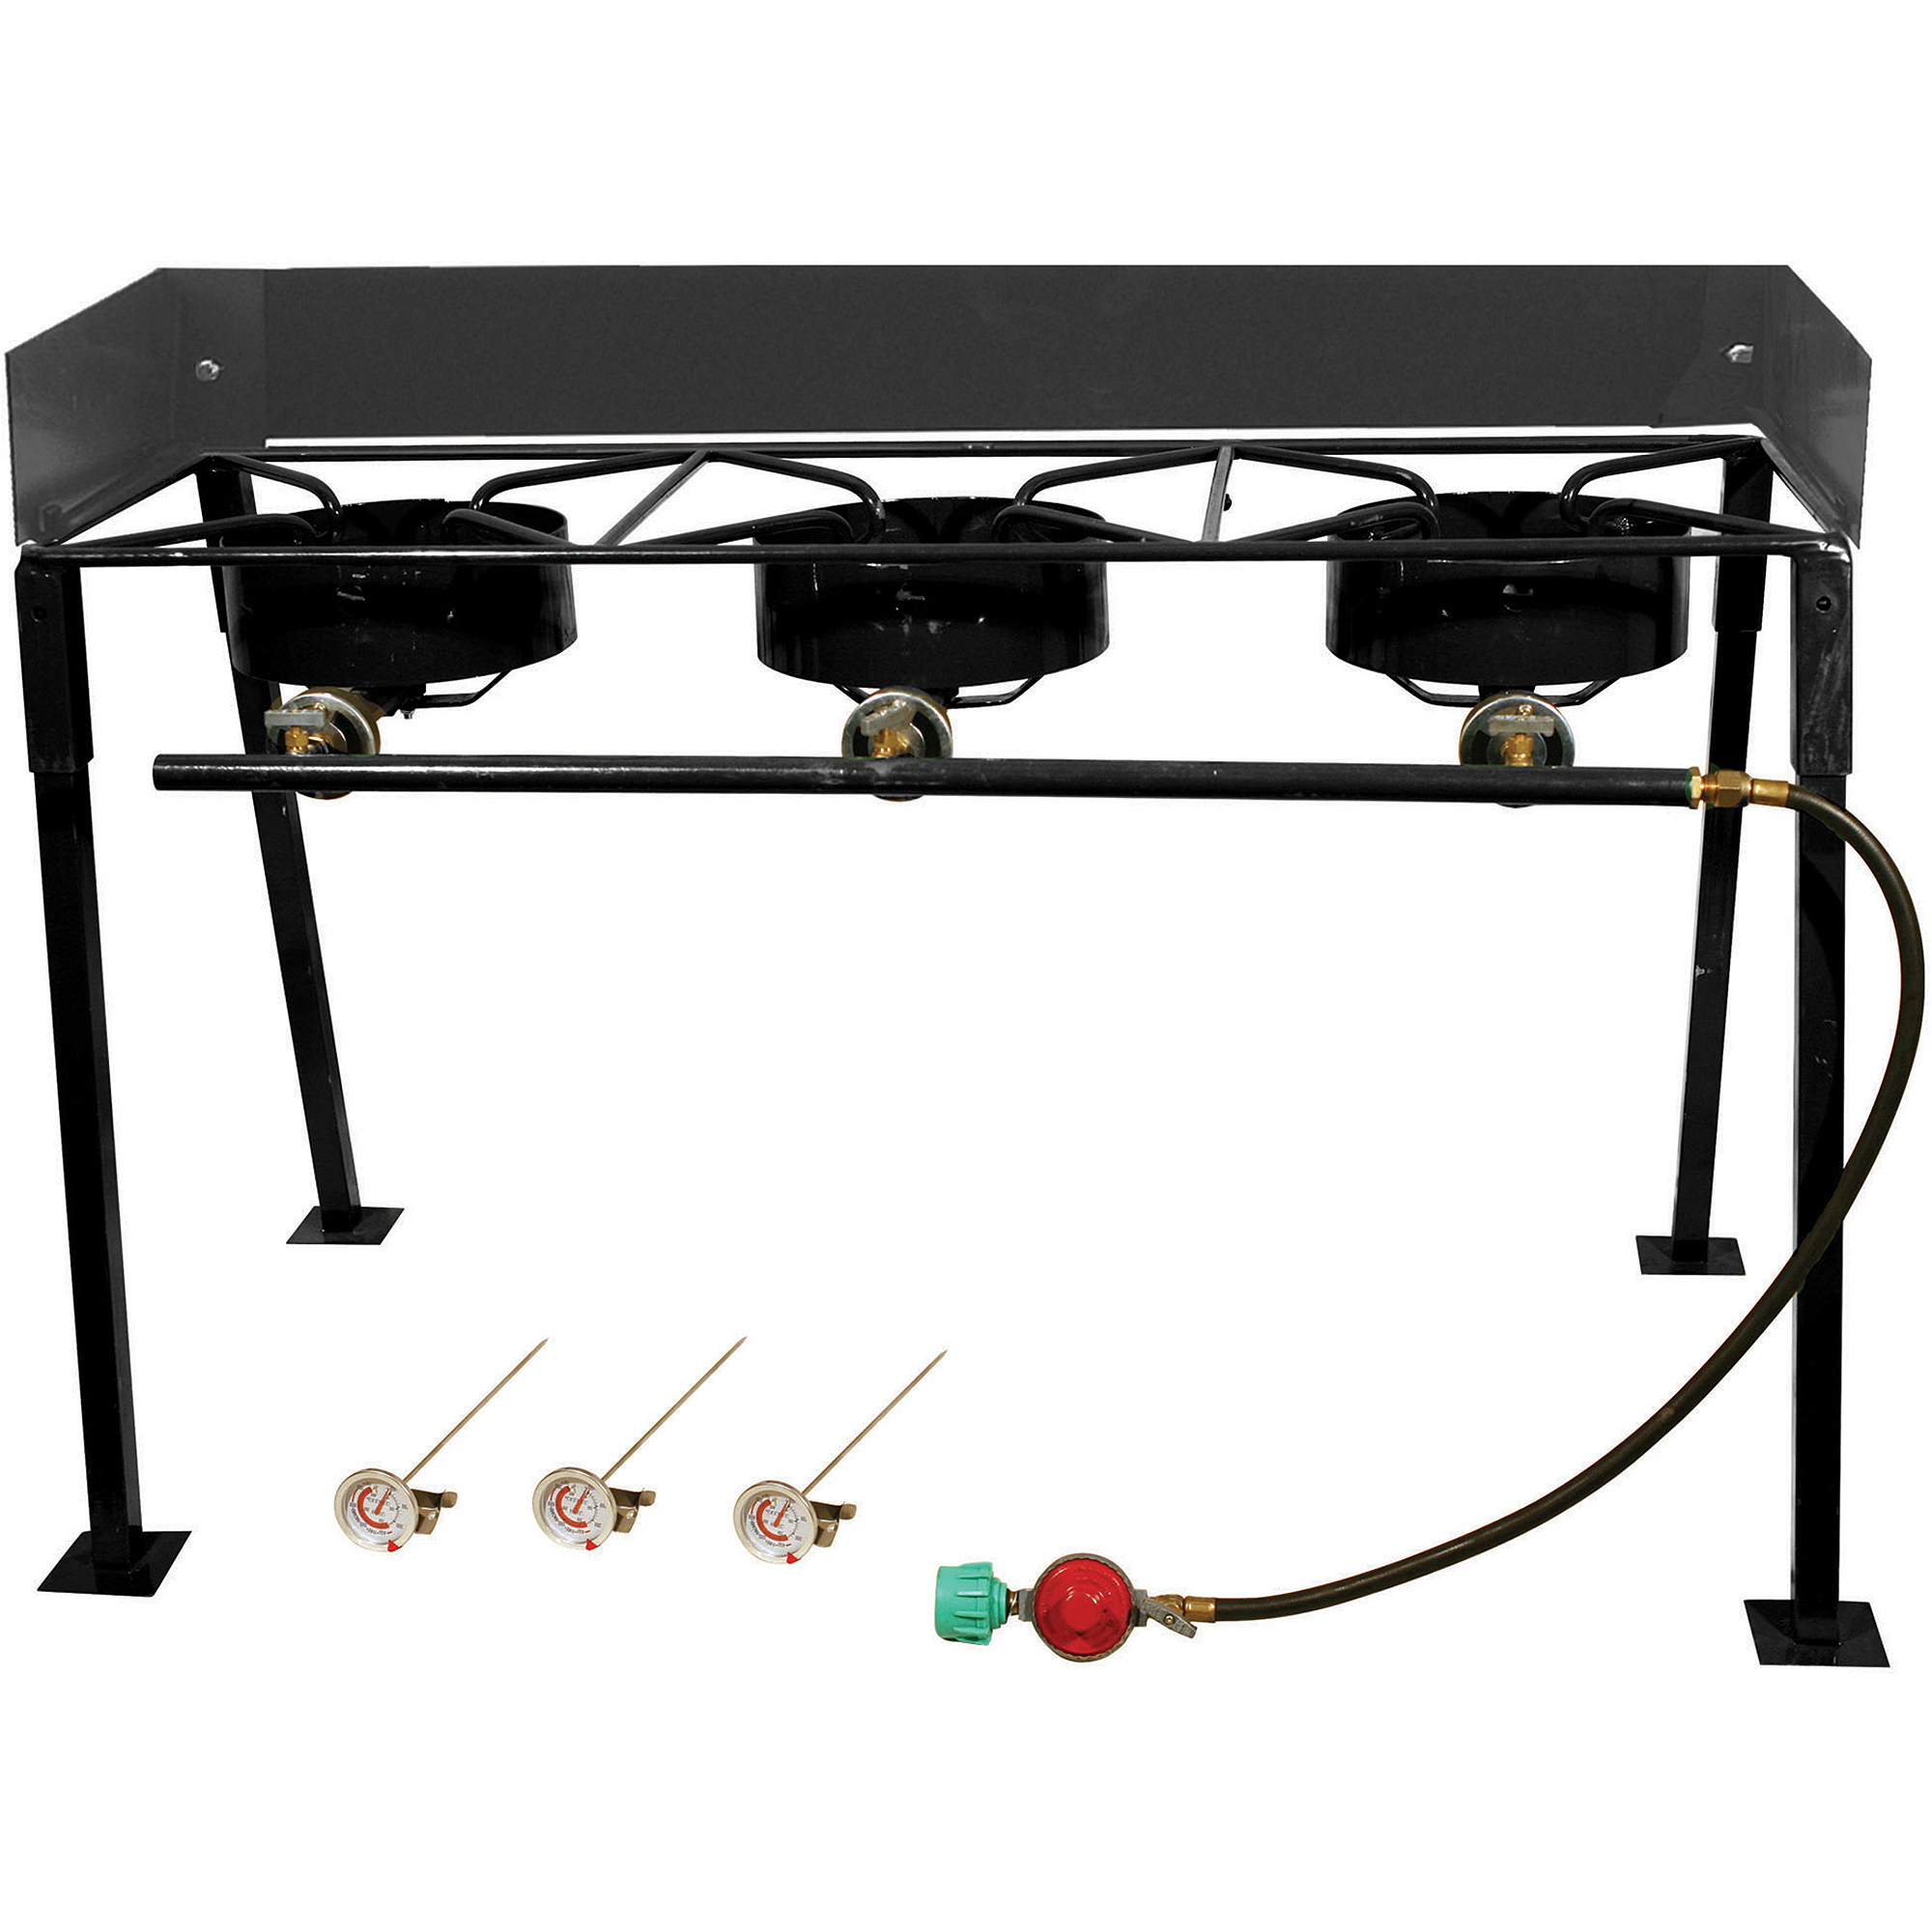 King Kooker Portable Propane 3-Burner Outdoor Camp Stove with Detachable Legs by Metal Fusion, Inc.